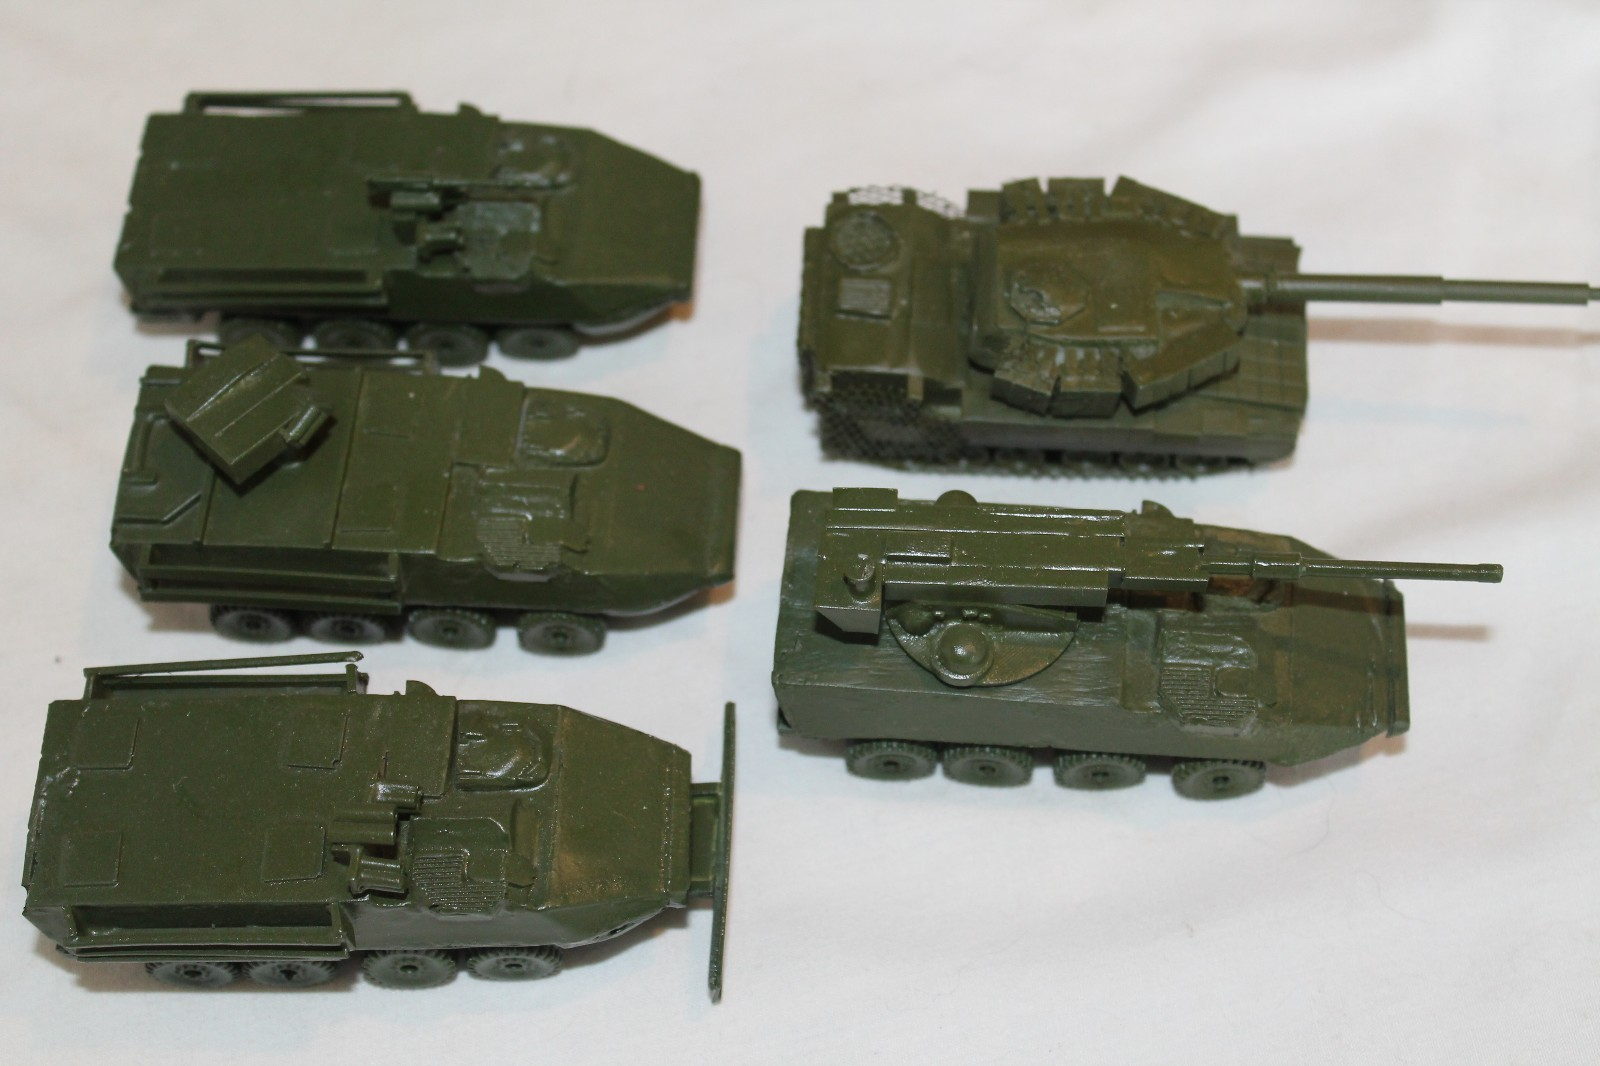 Stryker Army Weapon Systems